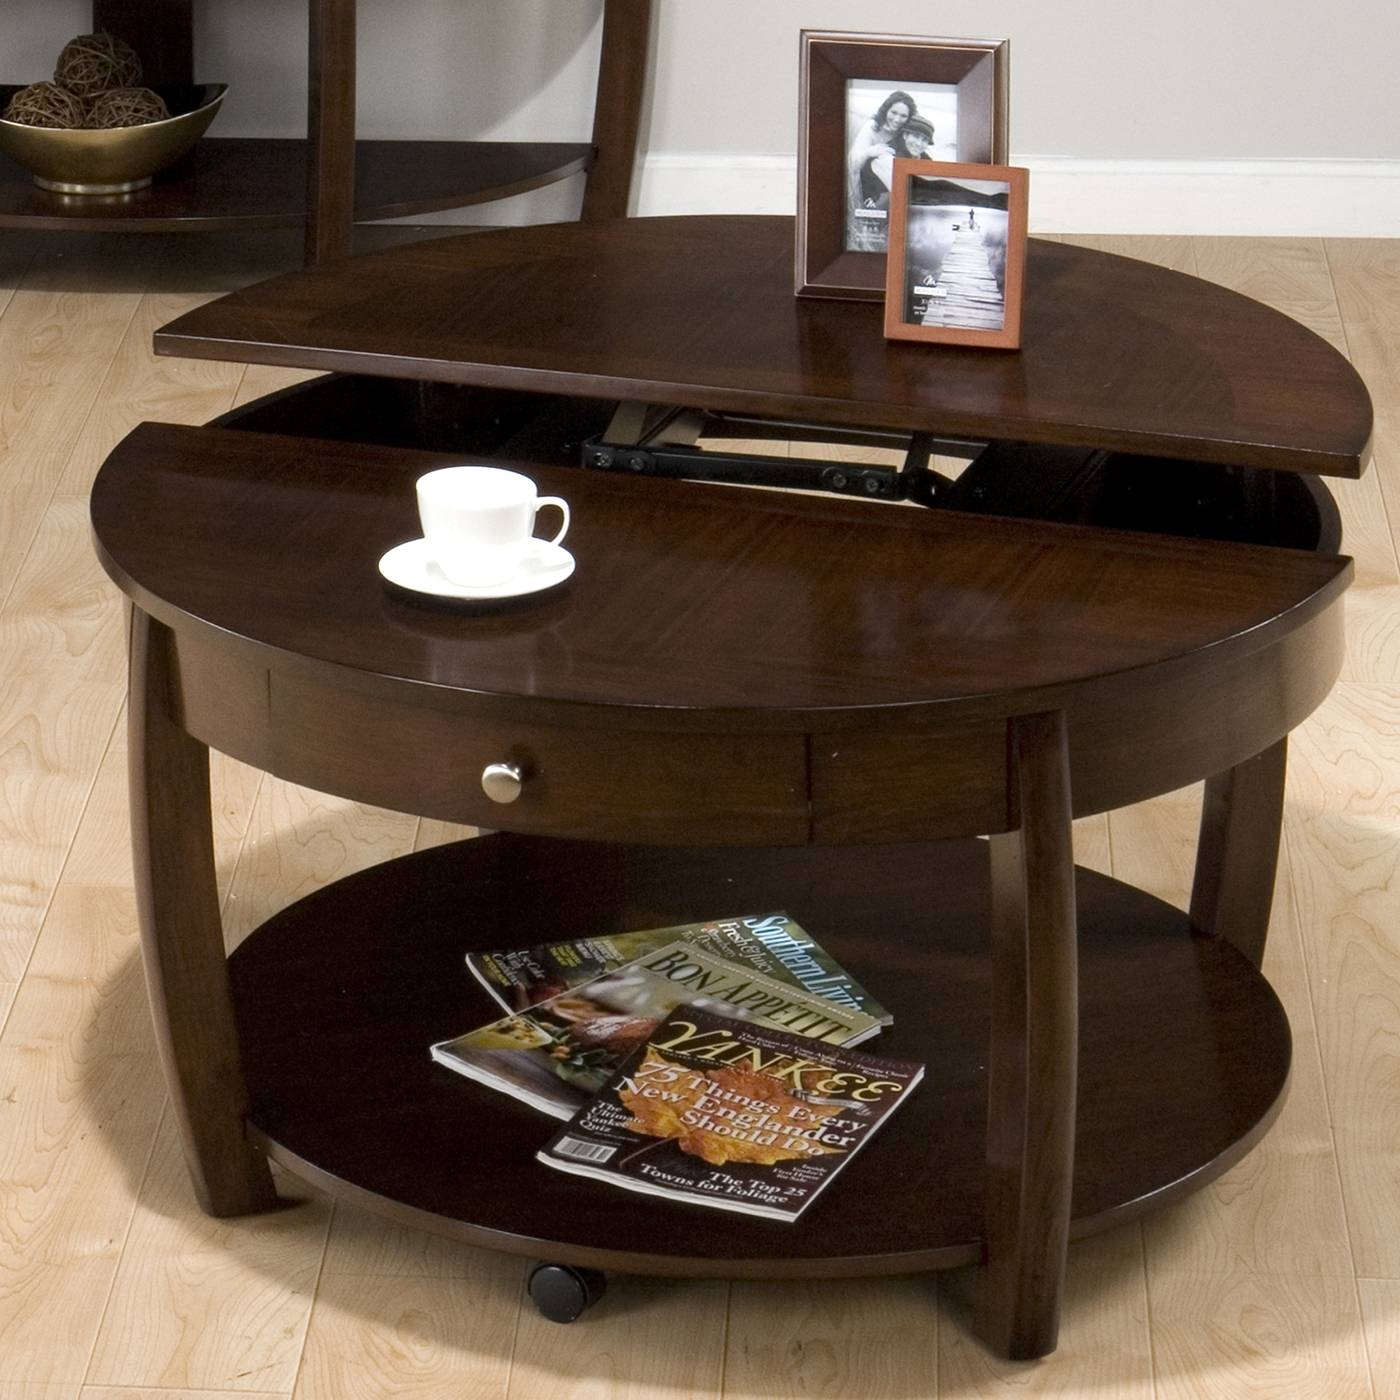 Quality Lift Top Coffee Table Chicago Furniture Warehouse Buy with Lift Top Coffee Tables With Storage (Image 23 of 30)